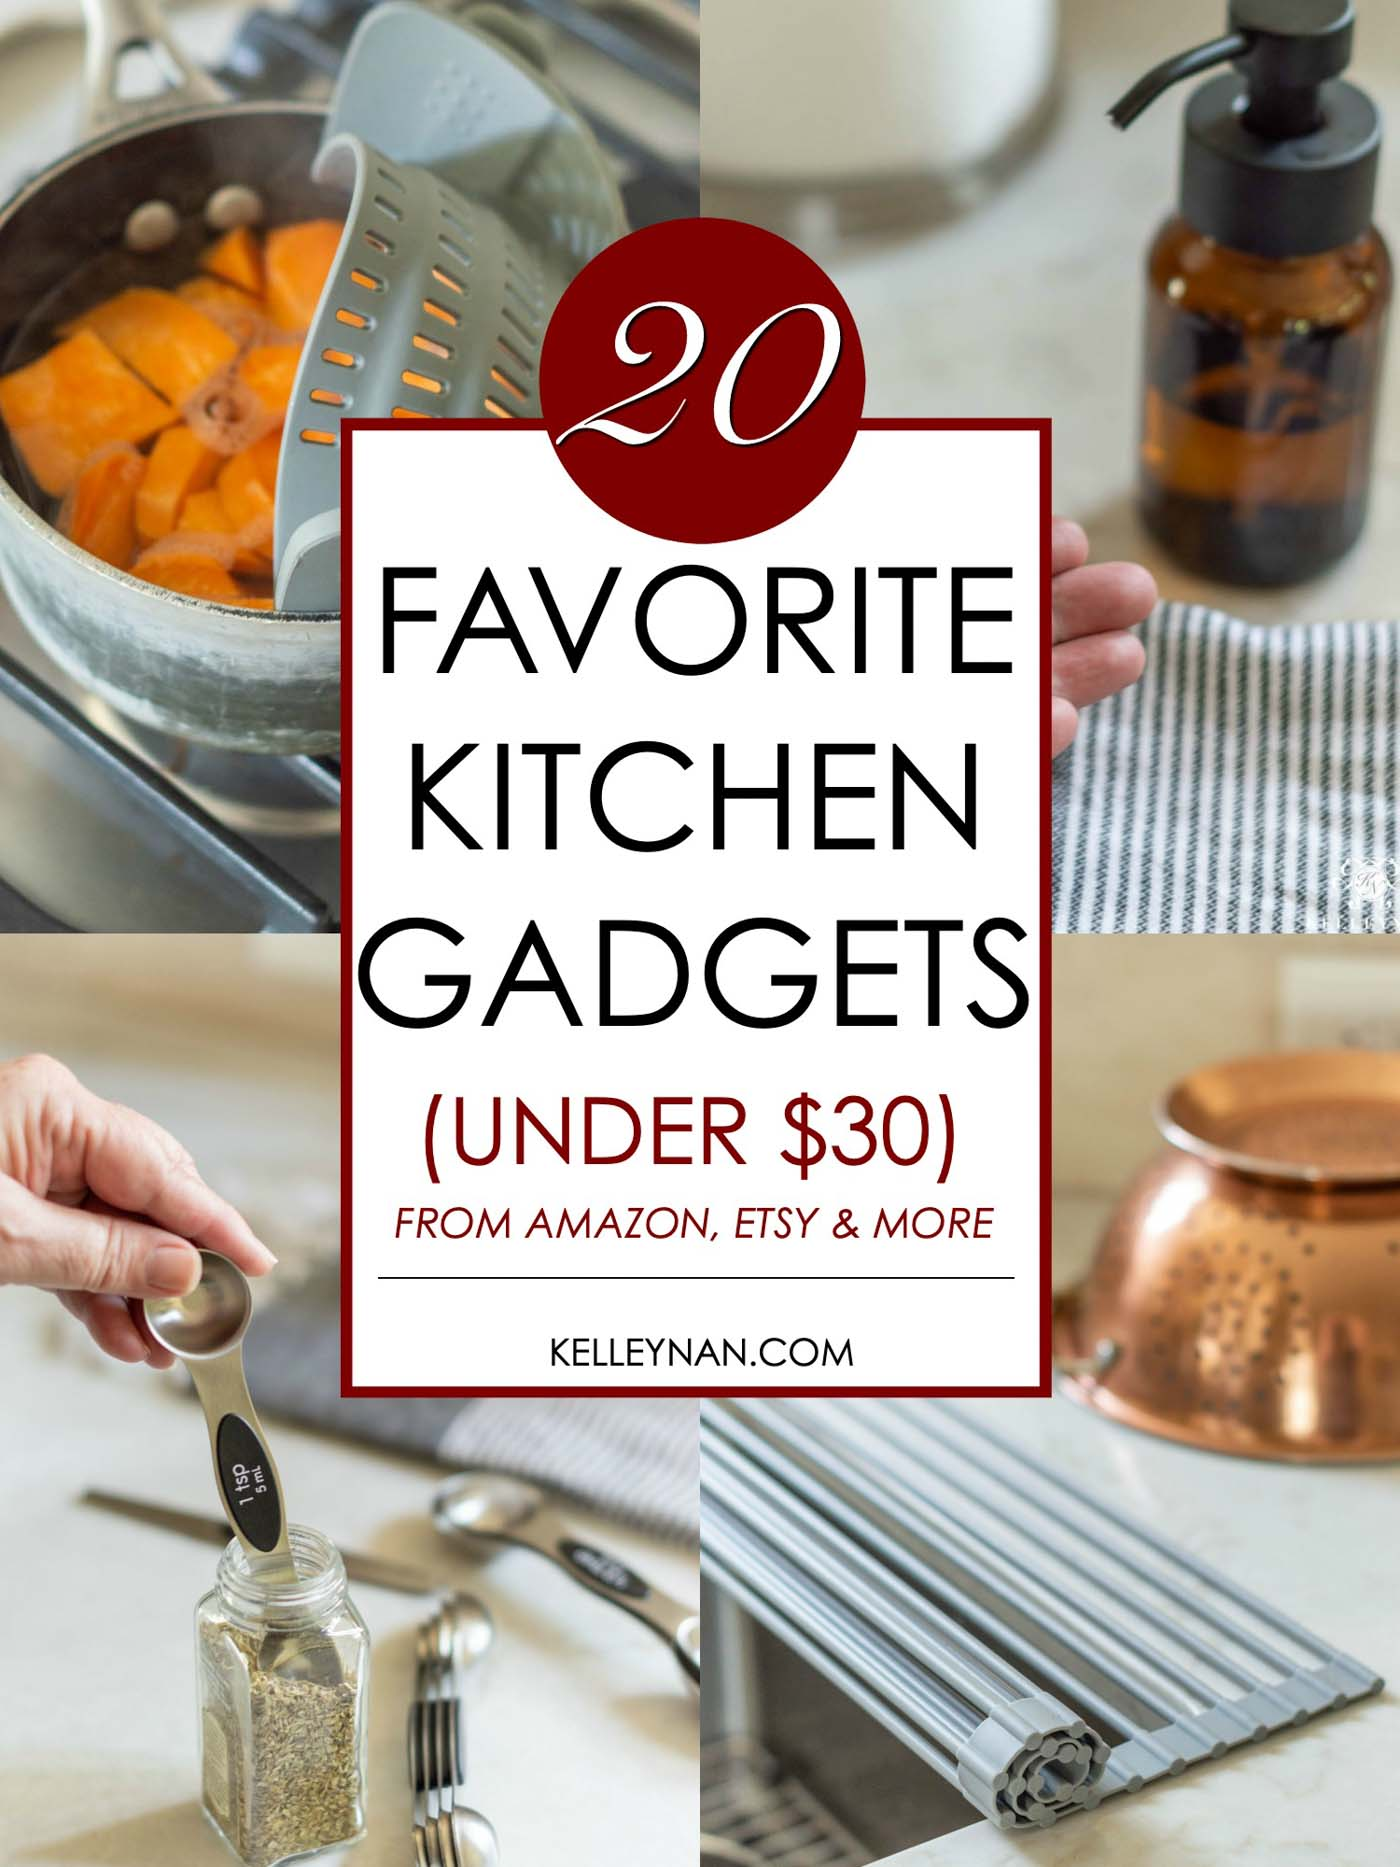 20 BEST KITCHEN GADGETS UNDER $30 FROM AMAZON, ETSY AND MORE!